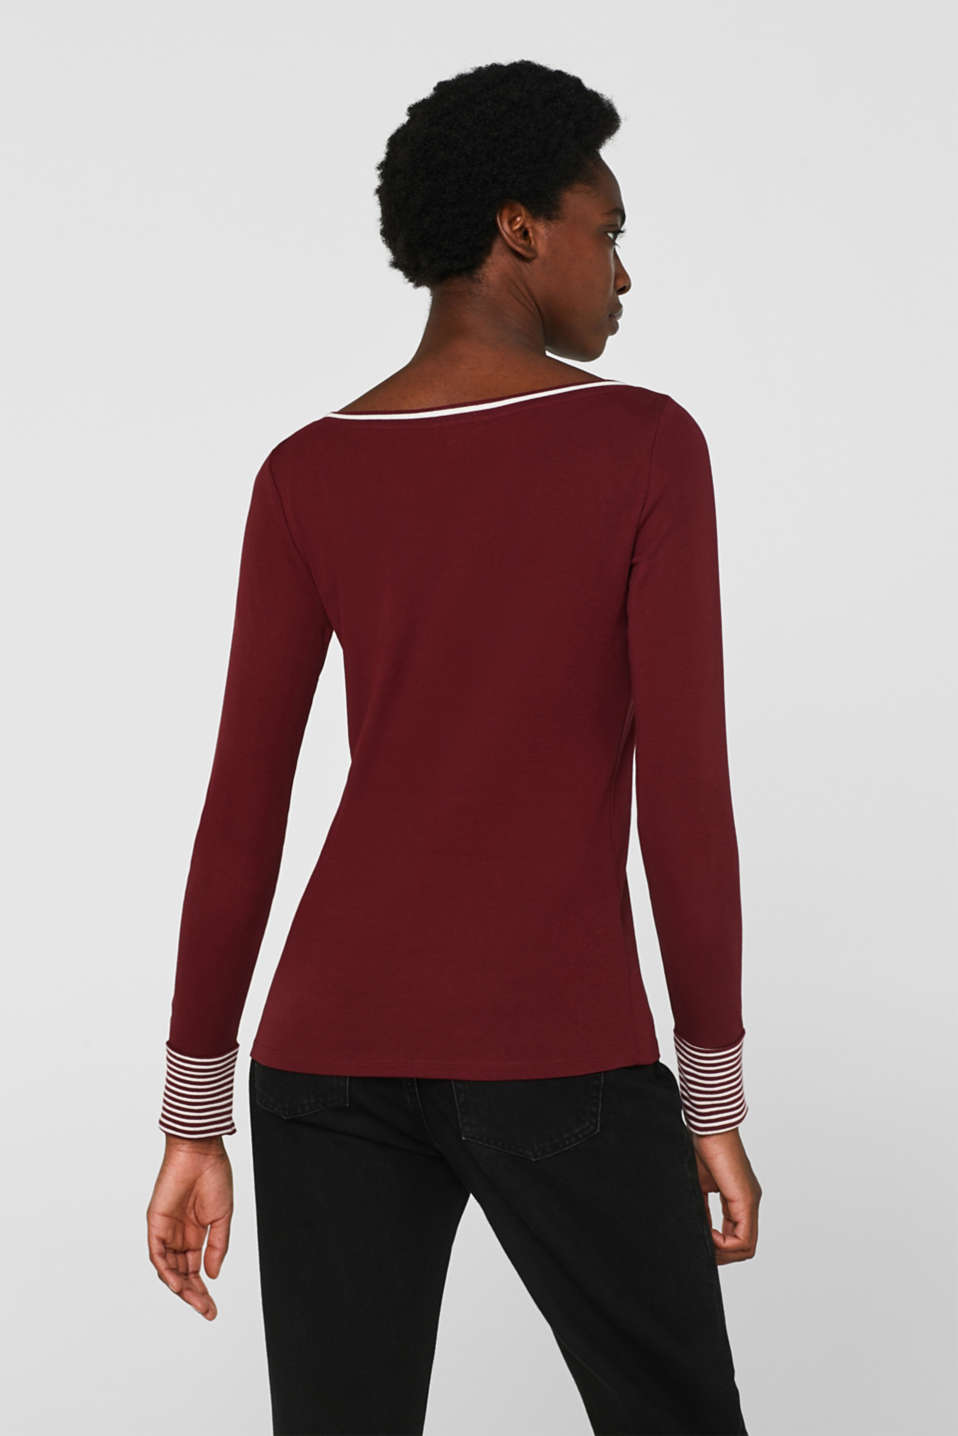 Long sleeve top with striped borders, 100% cotton, GARNET RED, detail image number 3